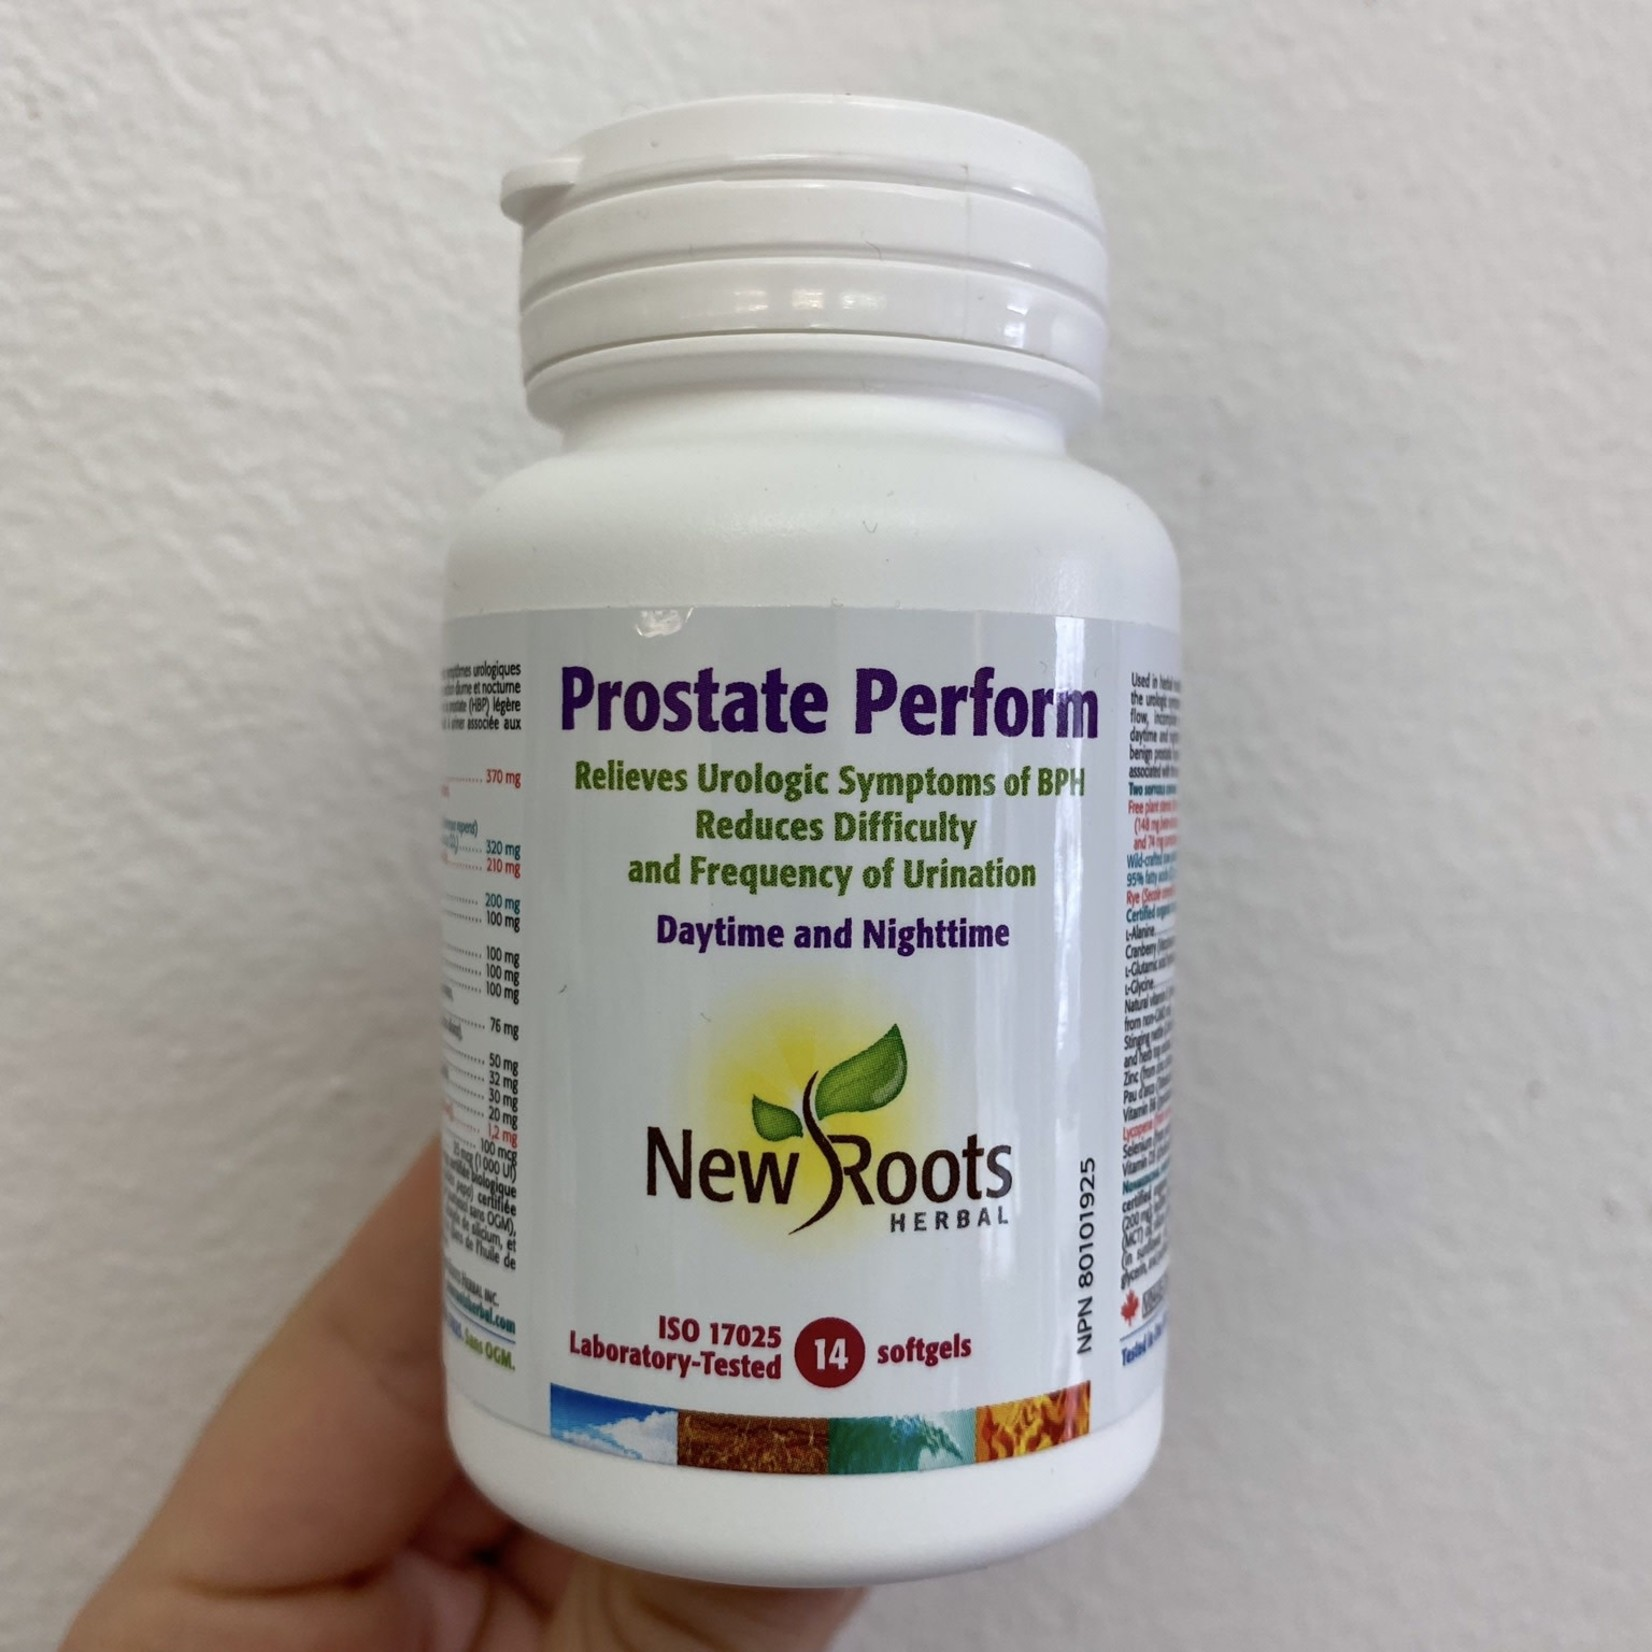 New Roots New Roots Prostate Perform 14 softgels